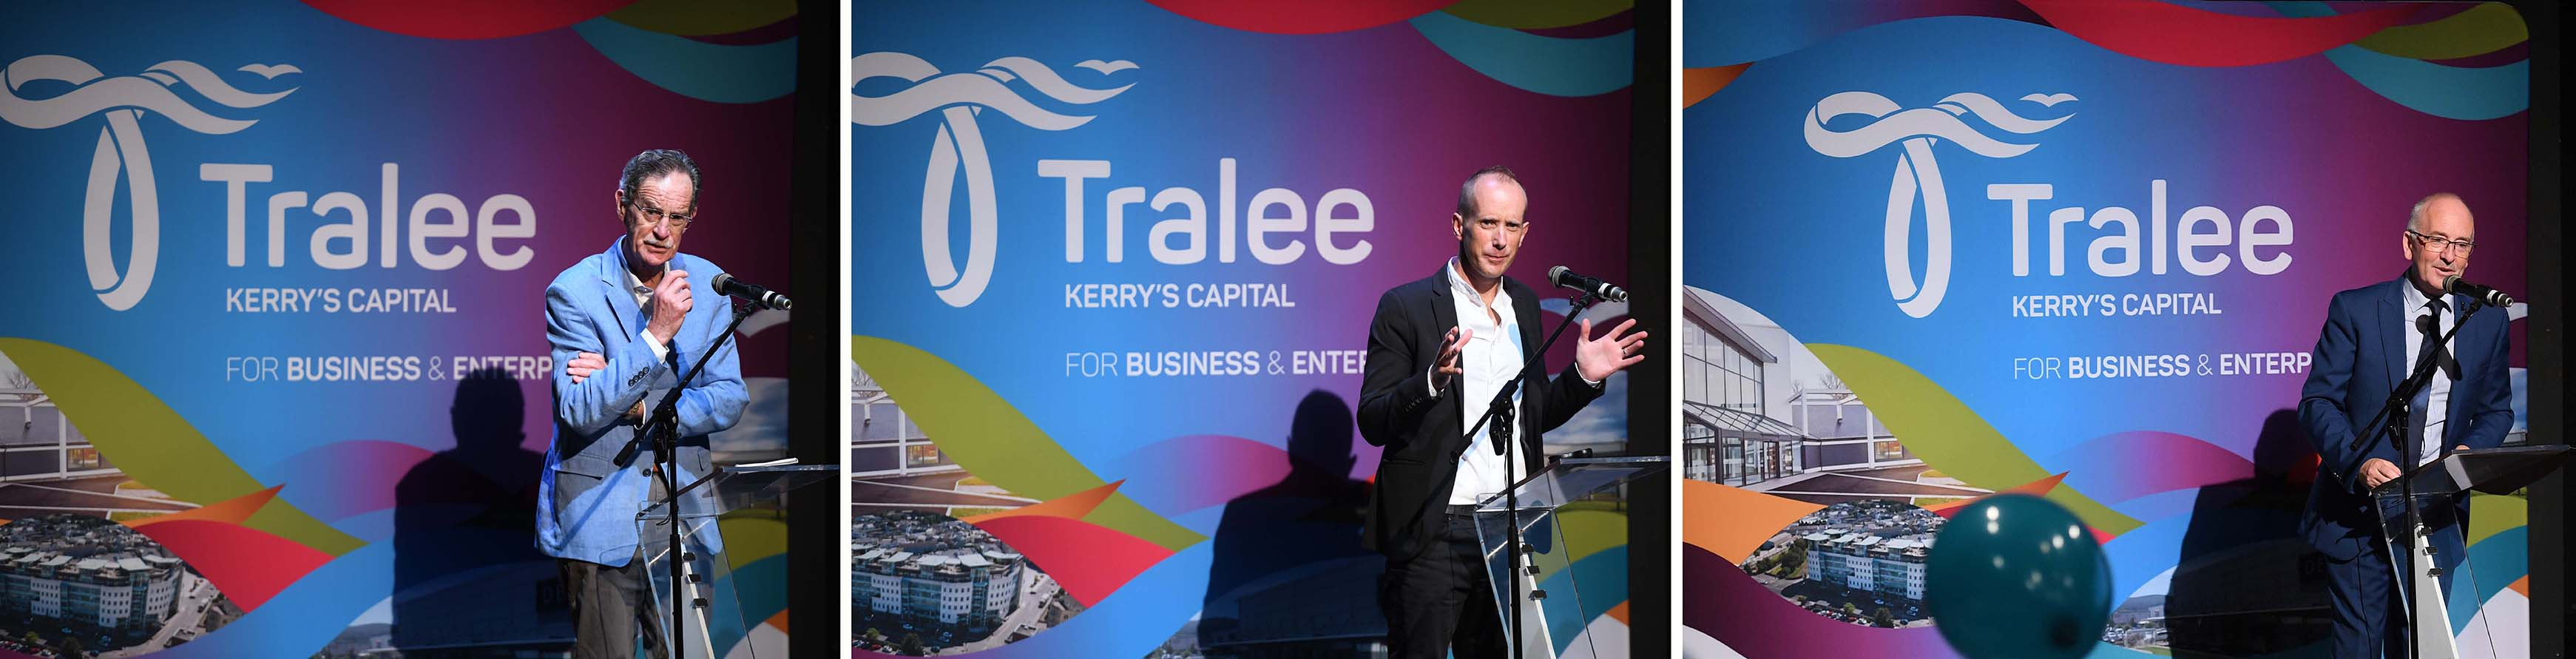 REPRO FREE - JOB creation is the key focus for Tralee Chamber Alliance with the appointment today of Dick Spring as the Business Development Ambassador for Kerry's Capital Town. The former Tánaiste's first duty in the new role was to unveil the new Tralee Brand. Created by the business community of Tralee for everyone in Tralee, the Brand will showcase the town with a vibrant image and strengthen its case when attracting investment, promoting tourism and help position Tralee as the integral business, technology and retail hub of Kerry. Photo By : Domnick Walsh © Eye Focus LTD © Tralee Co Kerry Ireland Phone Mobile 087 / 2672033 L/Line 066 71 22 981 E/mail - info@dwalshphoto.ie www.dwalshphoto.com